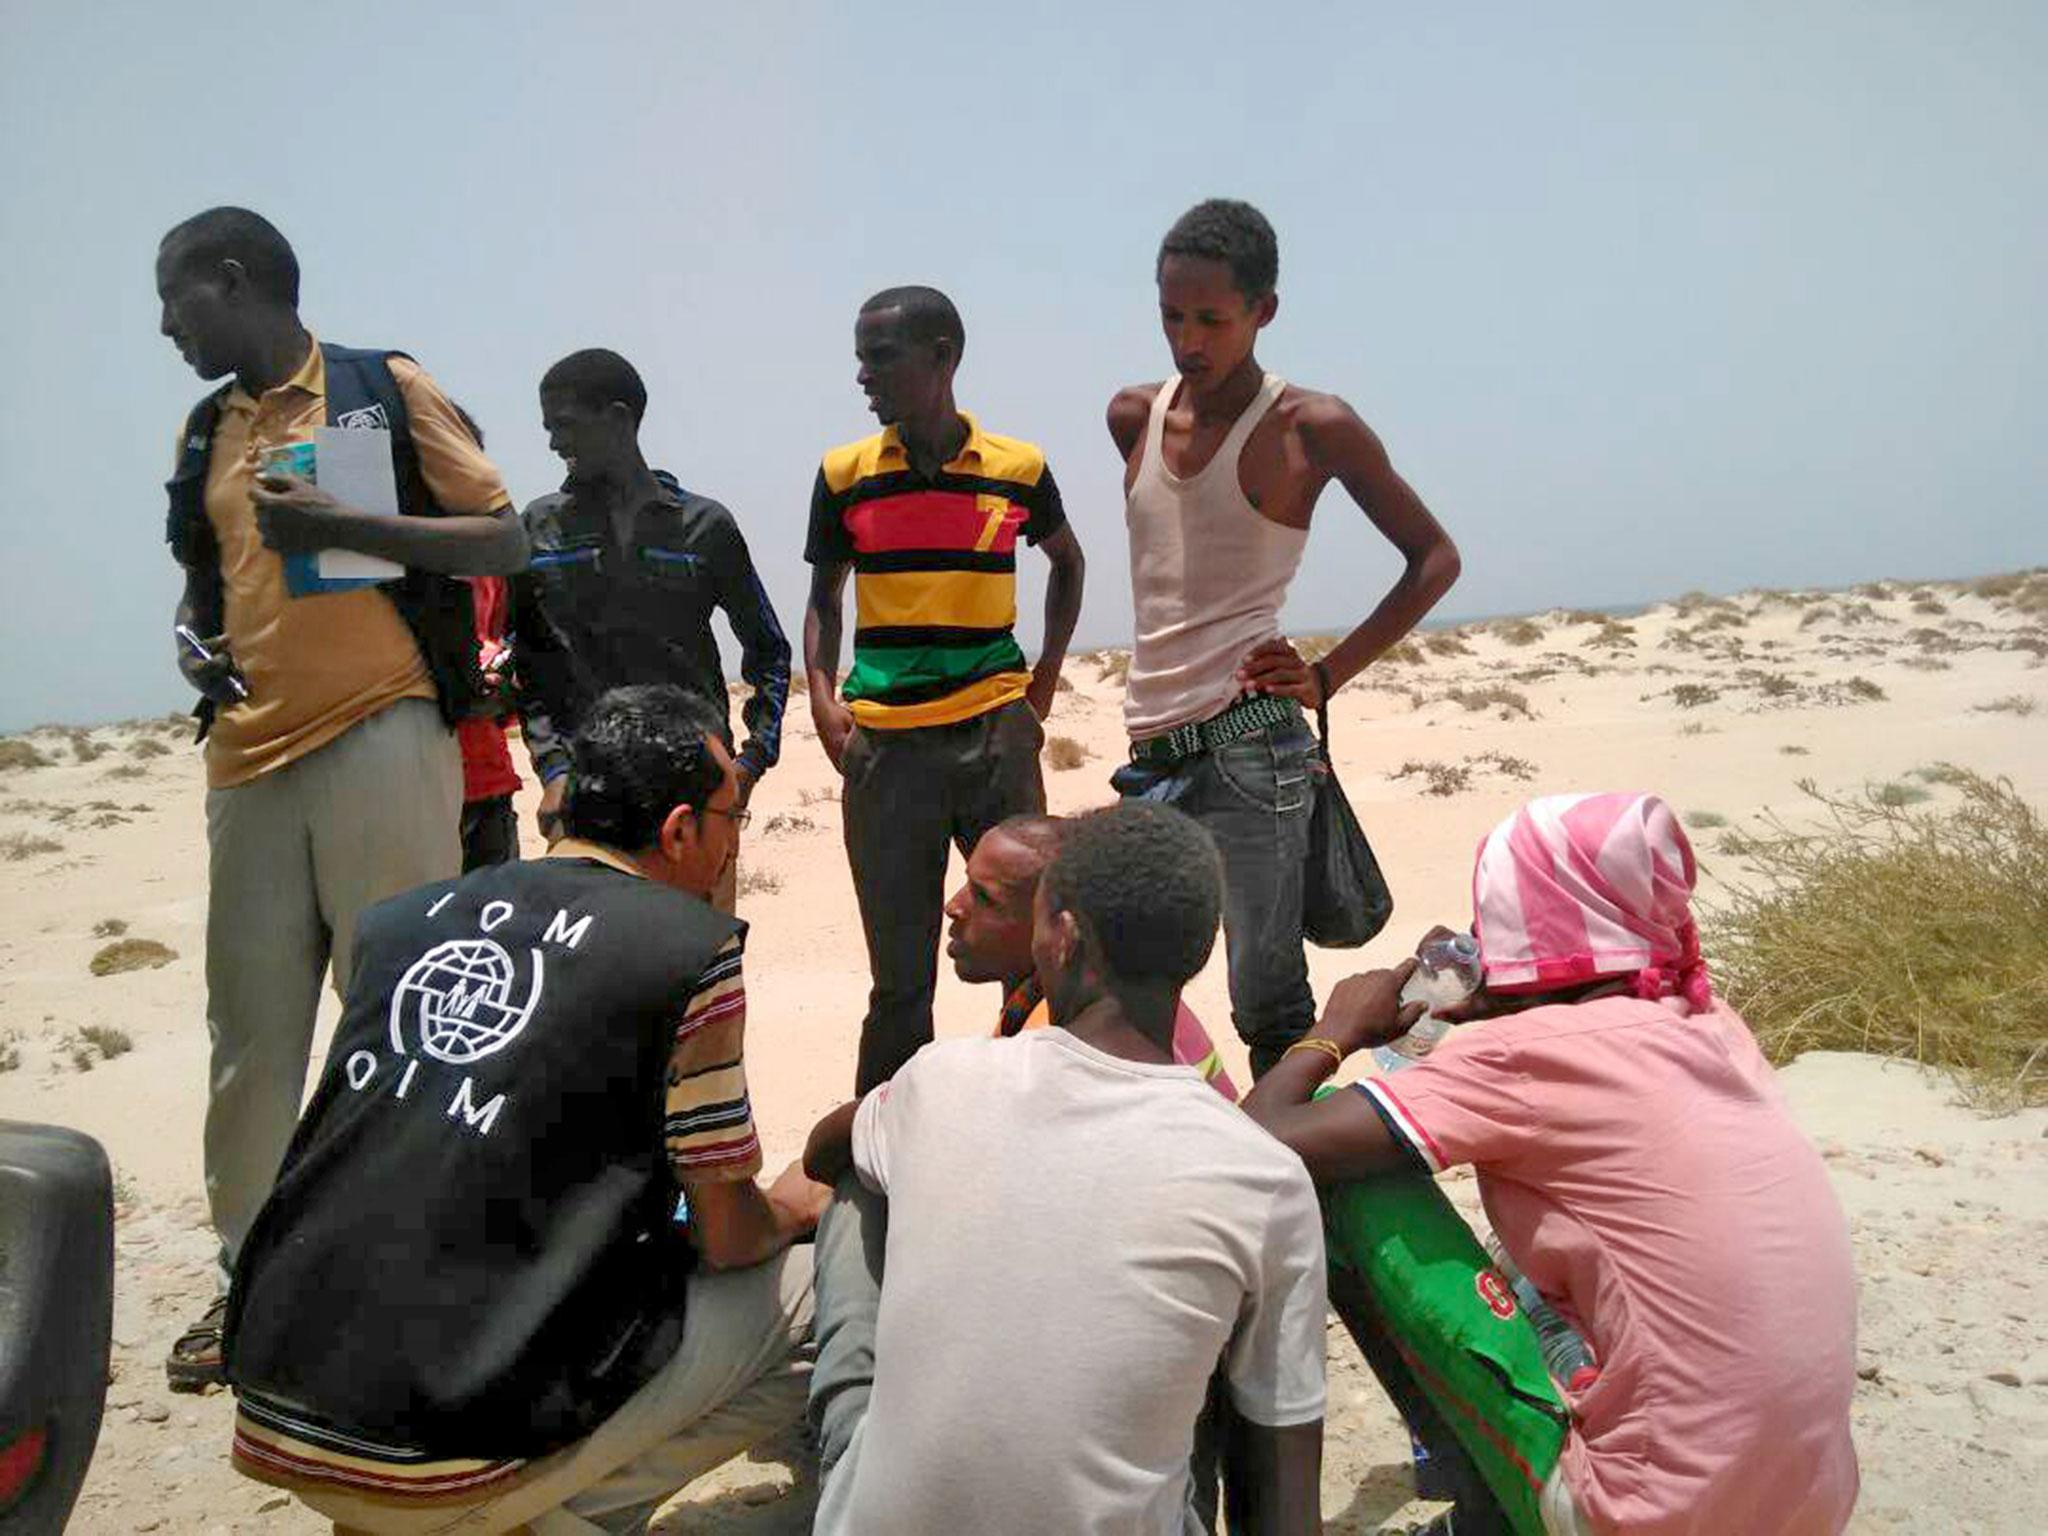 At least 30 African refugees drown off coast of Yemen 'after being fired on by smugglers'